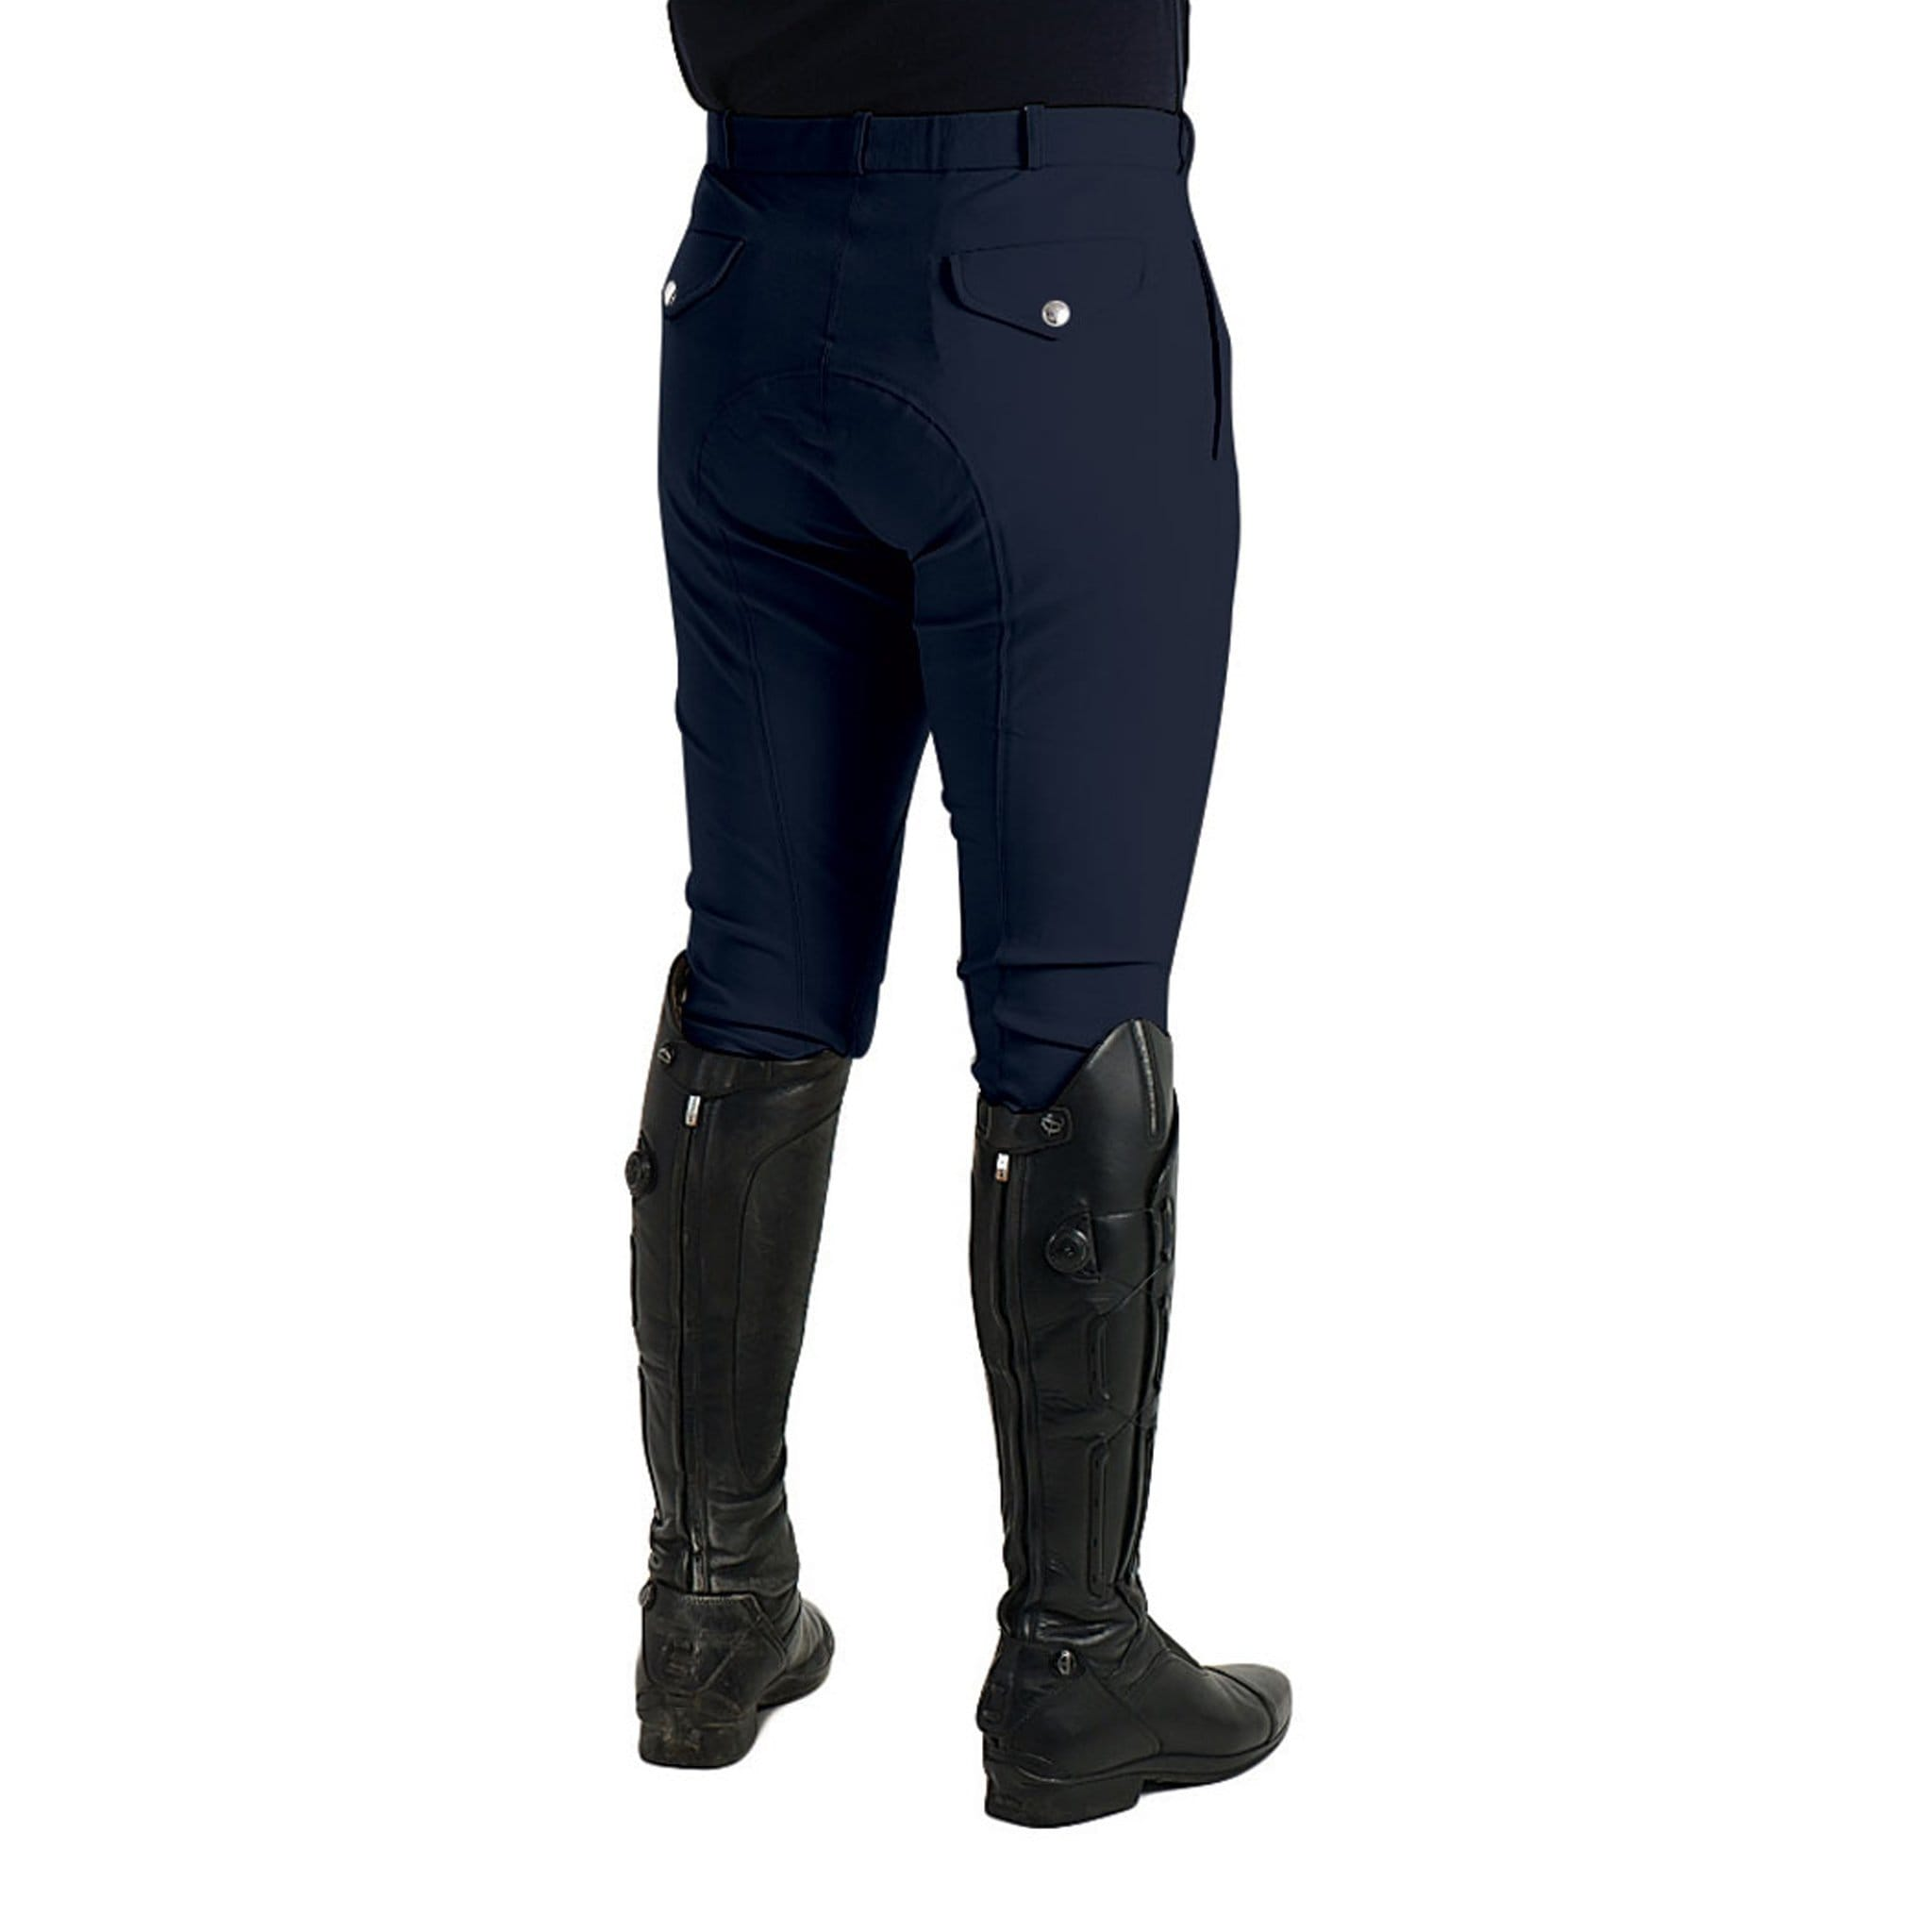 HyPerformance Men's Jakata Alos Knee Patch Breeches Navy Rear